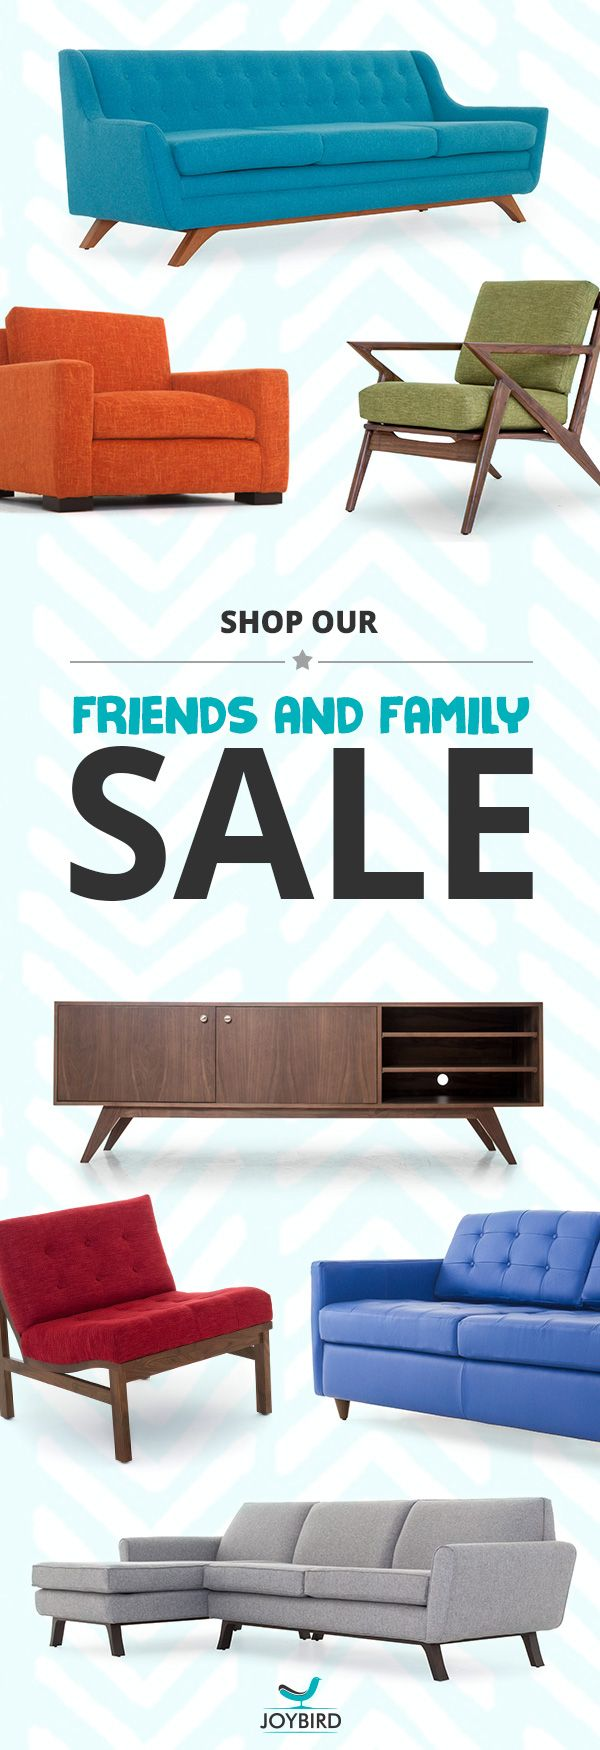 Premium quality designer furniture showroom to see touch and feel our - Inject A Little Mid Century Modern Style Into Your Home With Joybird S Collection Of Unique Quality Furniturefriends